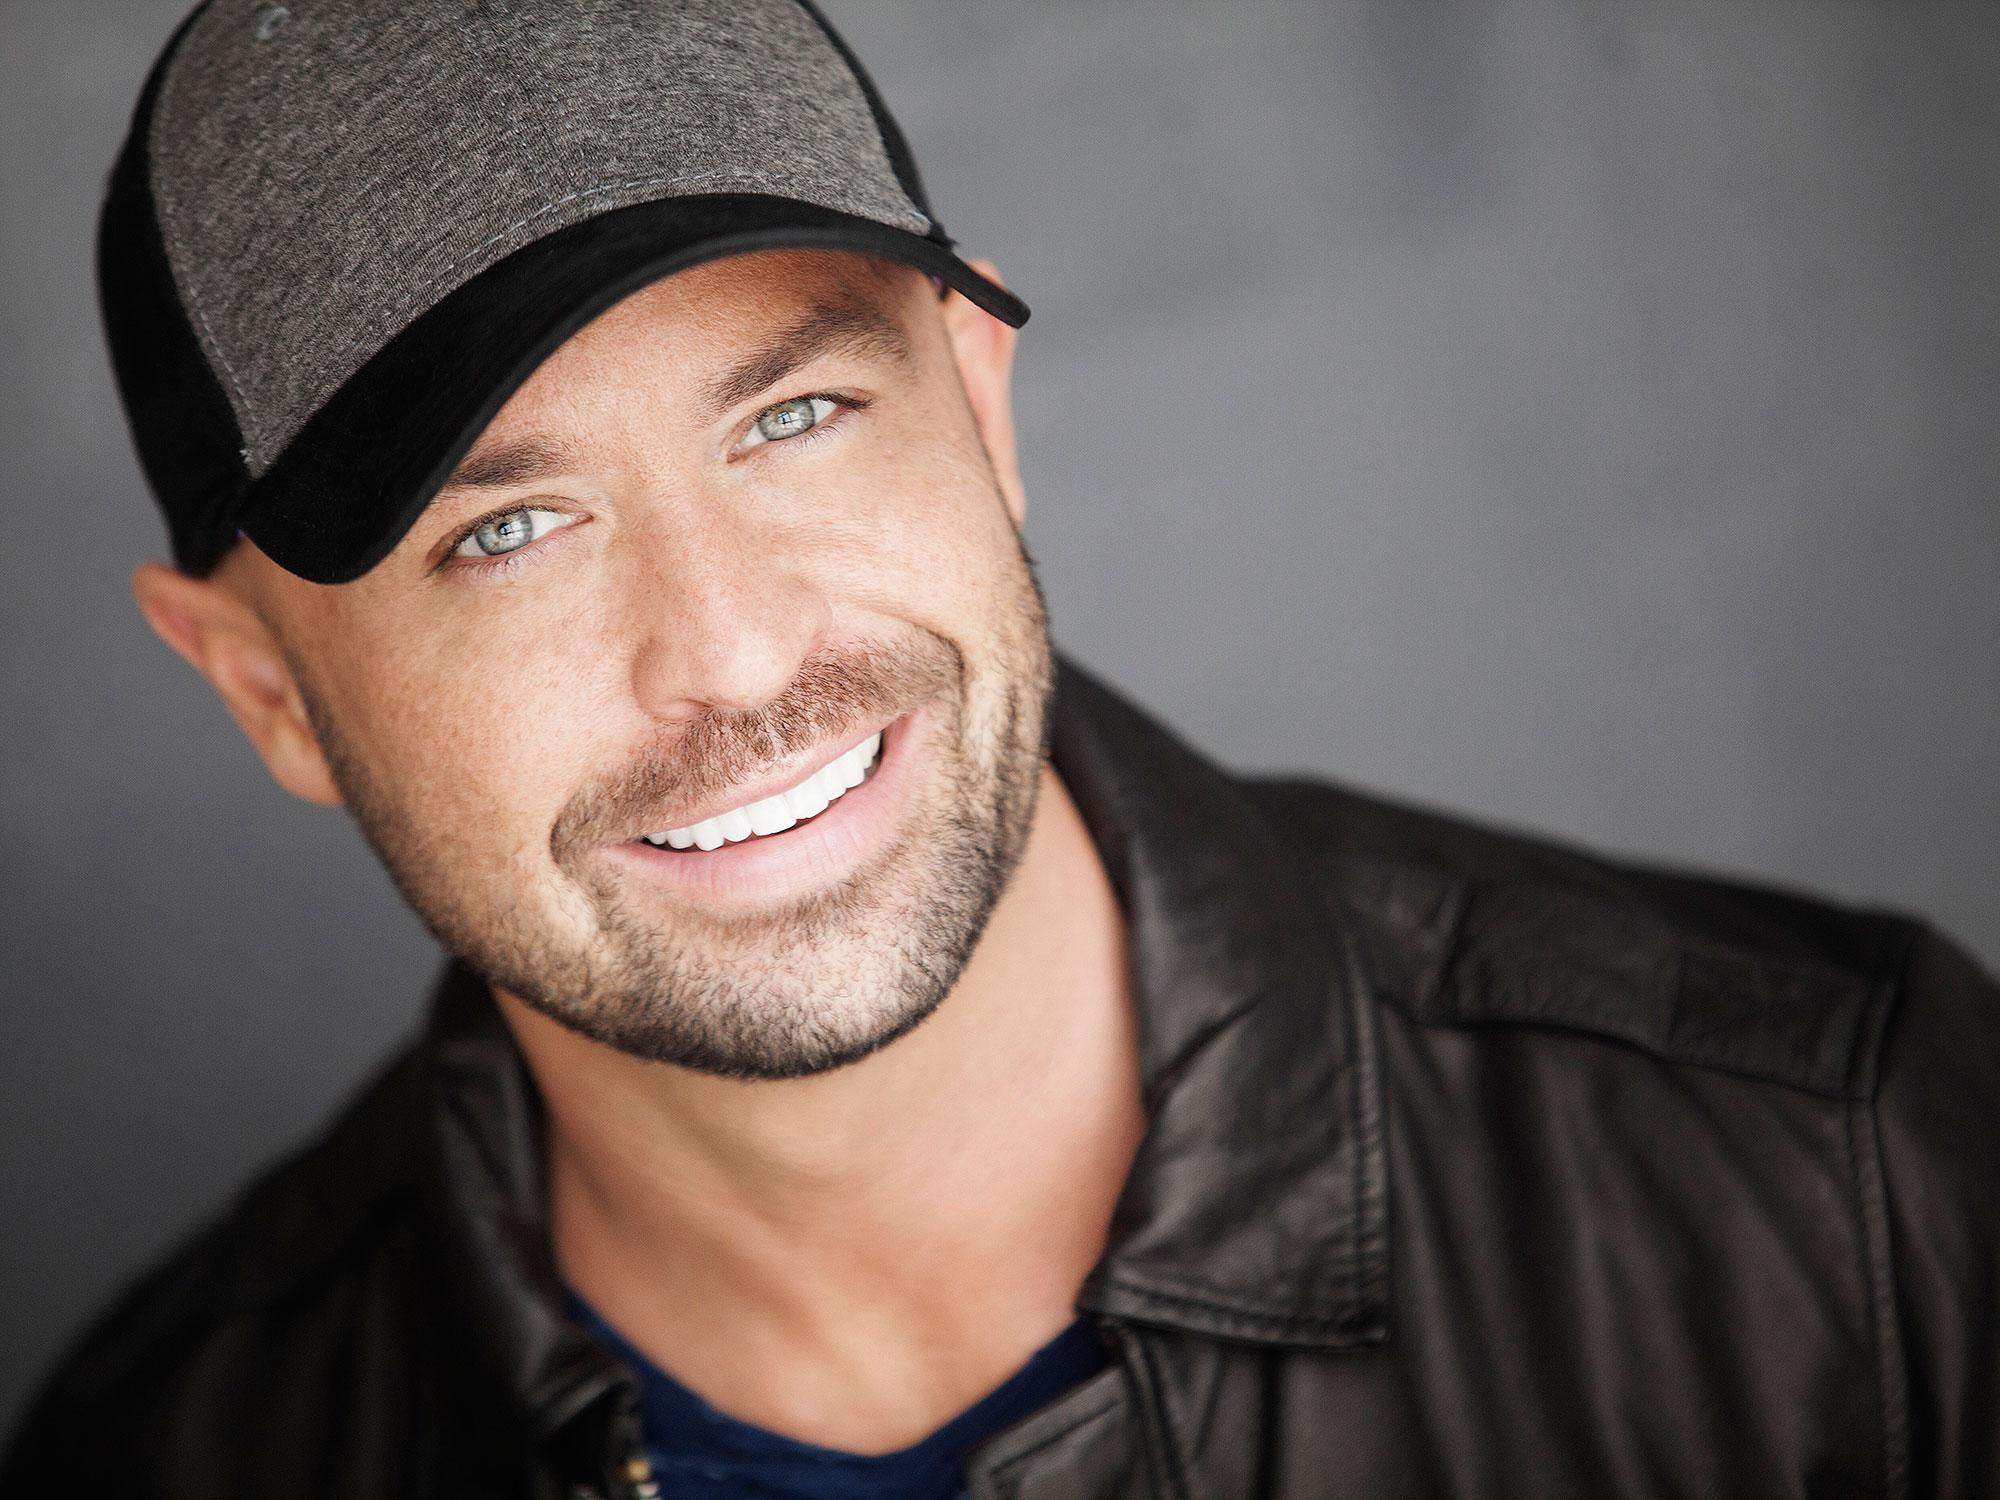 CMT Star Cody Alan Reacts to the 'Heartwarming' Support He Received After Coming Out: 'I Hope I Can Be a Positive Voice'